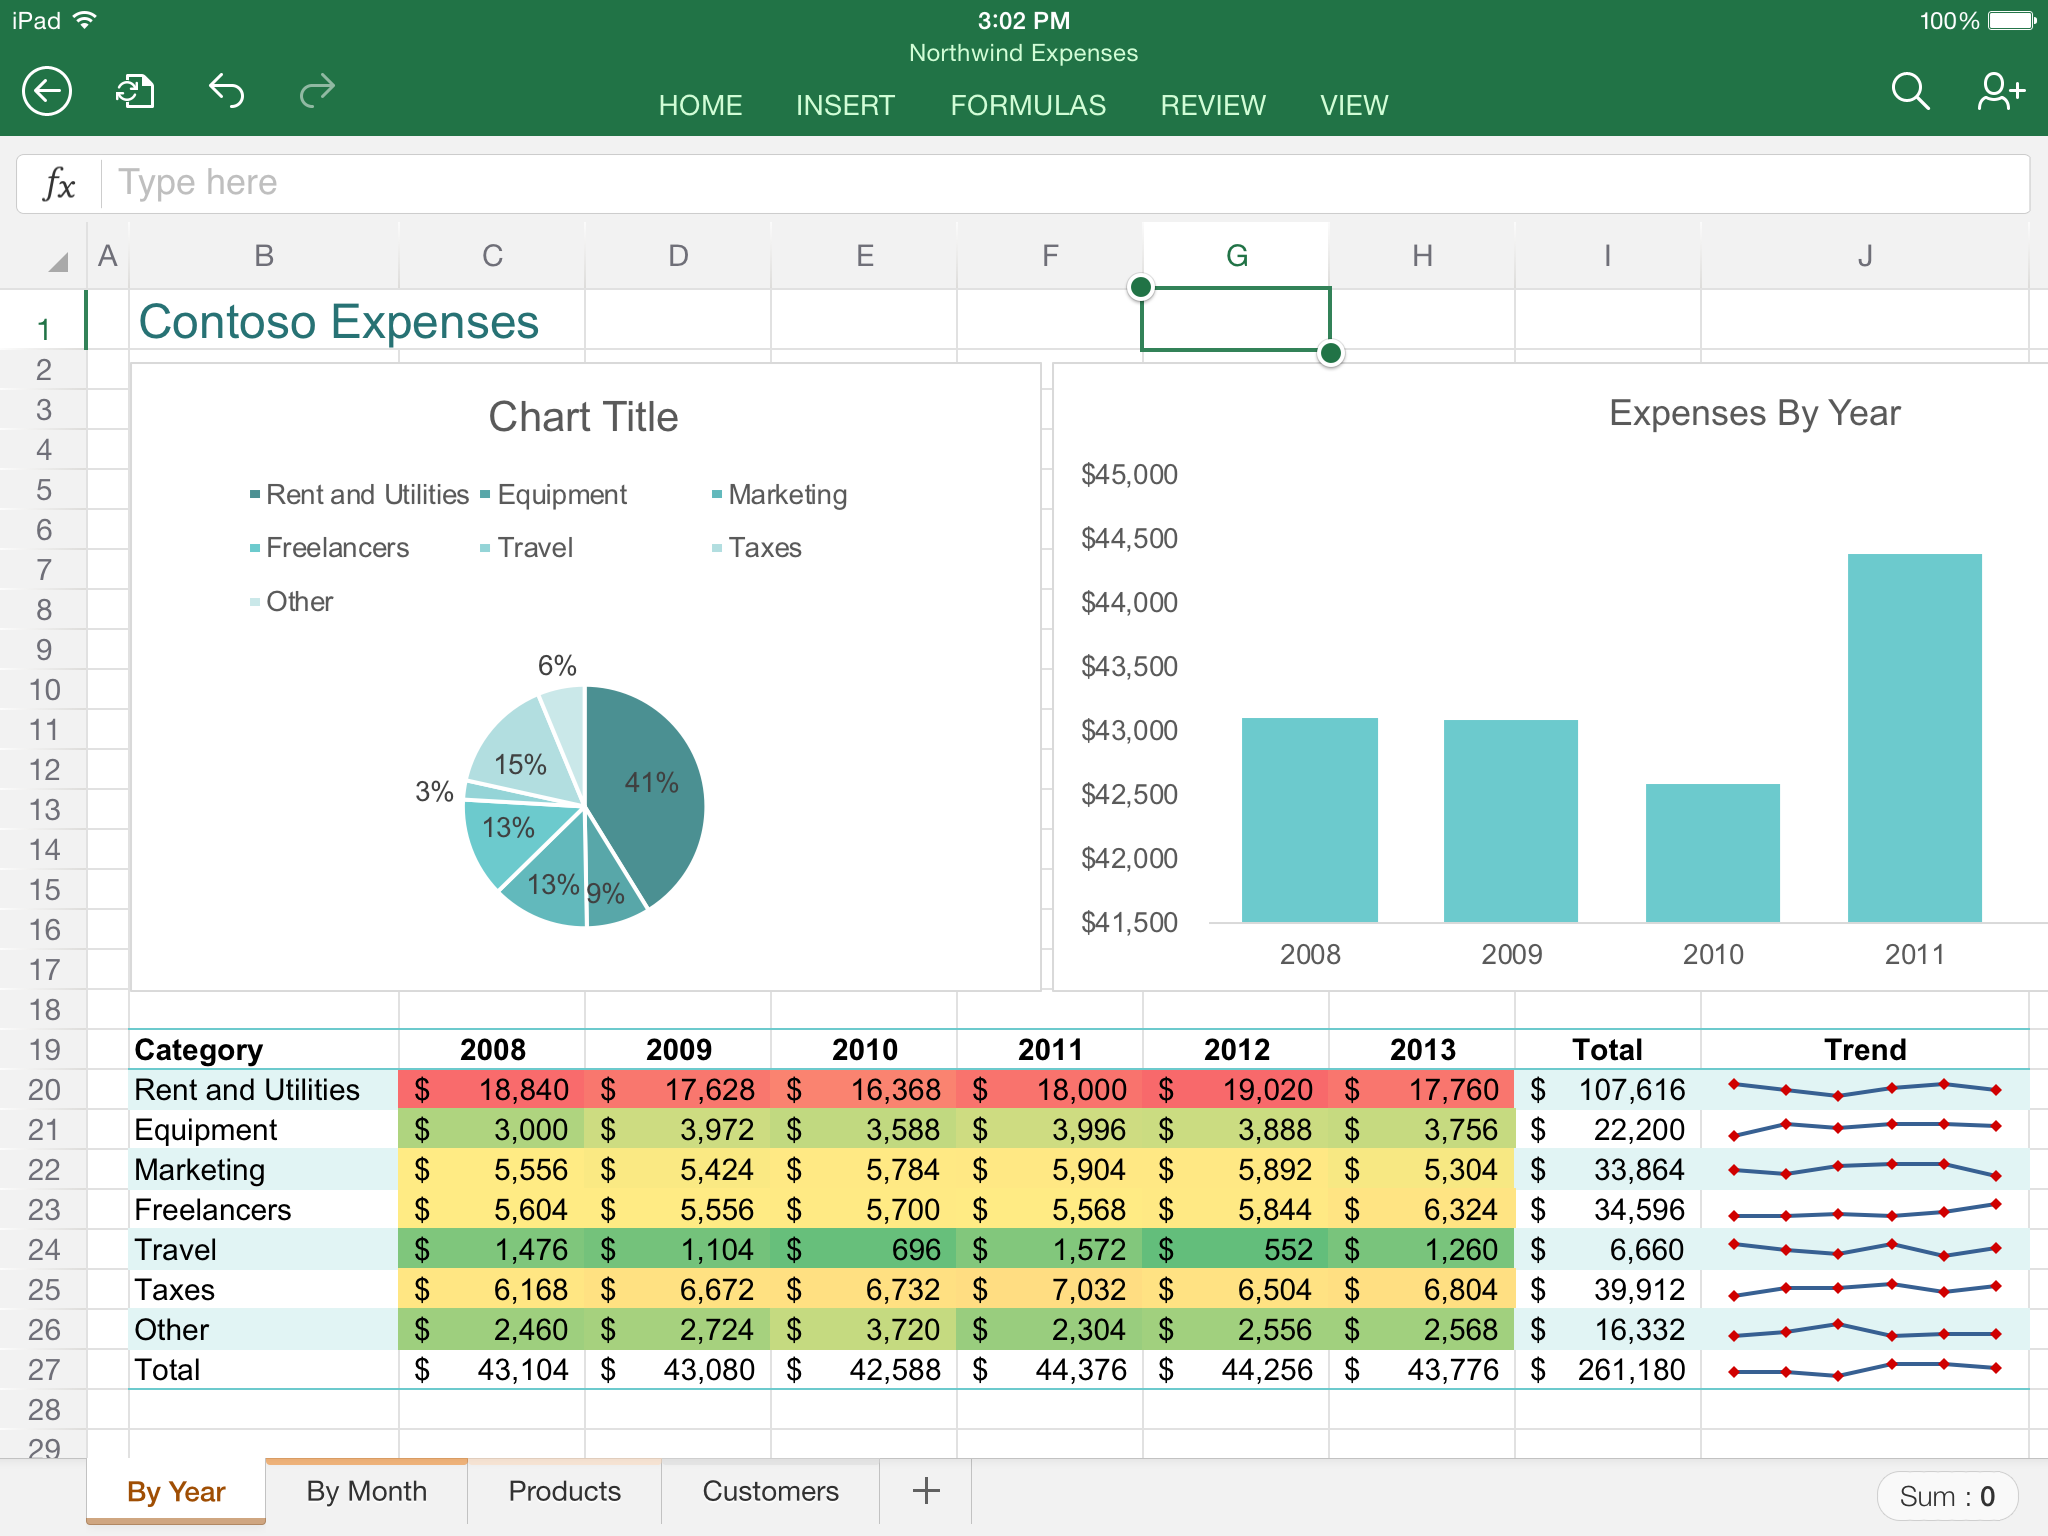 Ediblewildsus  Scenic App Highlight Excel  Mobile Digital Now With Likable Excel In Action With Agreeable Excel Vba Save Workbook Also Excel Programs In Addition Line Graphs In Excel And Excel Formula For Dates As Well As Excel Powerpivot  Additionally Cell Excel Definition From Youstonybrookedu With Ediblewildsus  Likable App Highlight Excel  Mobile Digital Now With Agreeable Excel In Action And Scenic Excel Vba Save Workbook Also Excel Programs In Addition Line Graphs In Excel From Youstonybrookedu